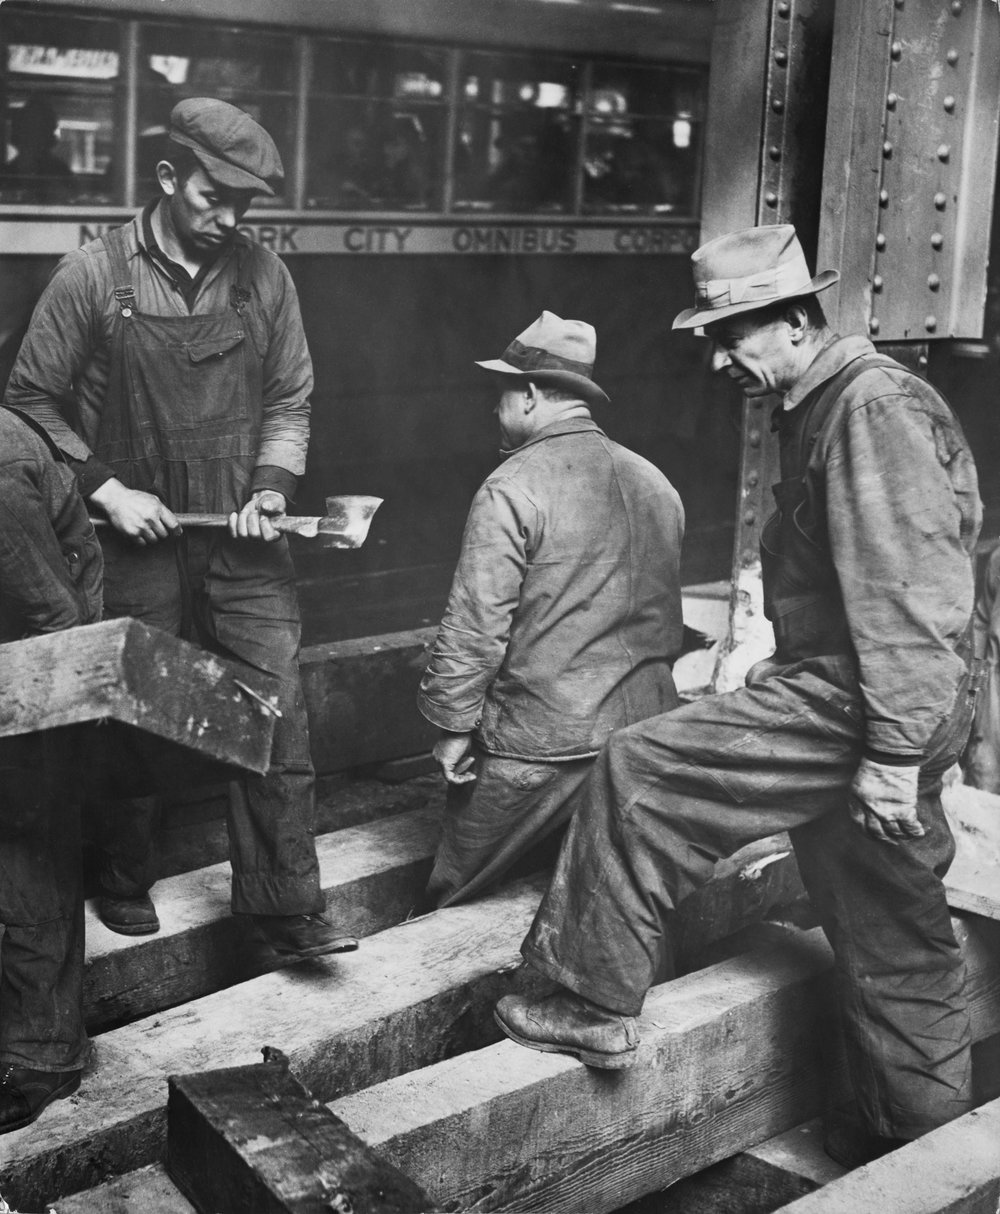 Subway excavation workers. Date: 1941. Photographer: Andrew Herman. WPA-FWP Collection, NYC Municipal Archives.